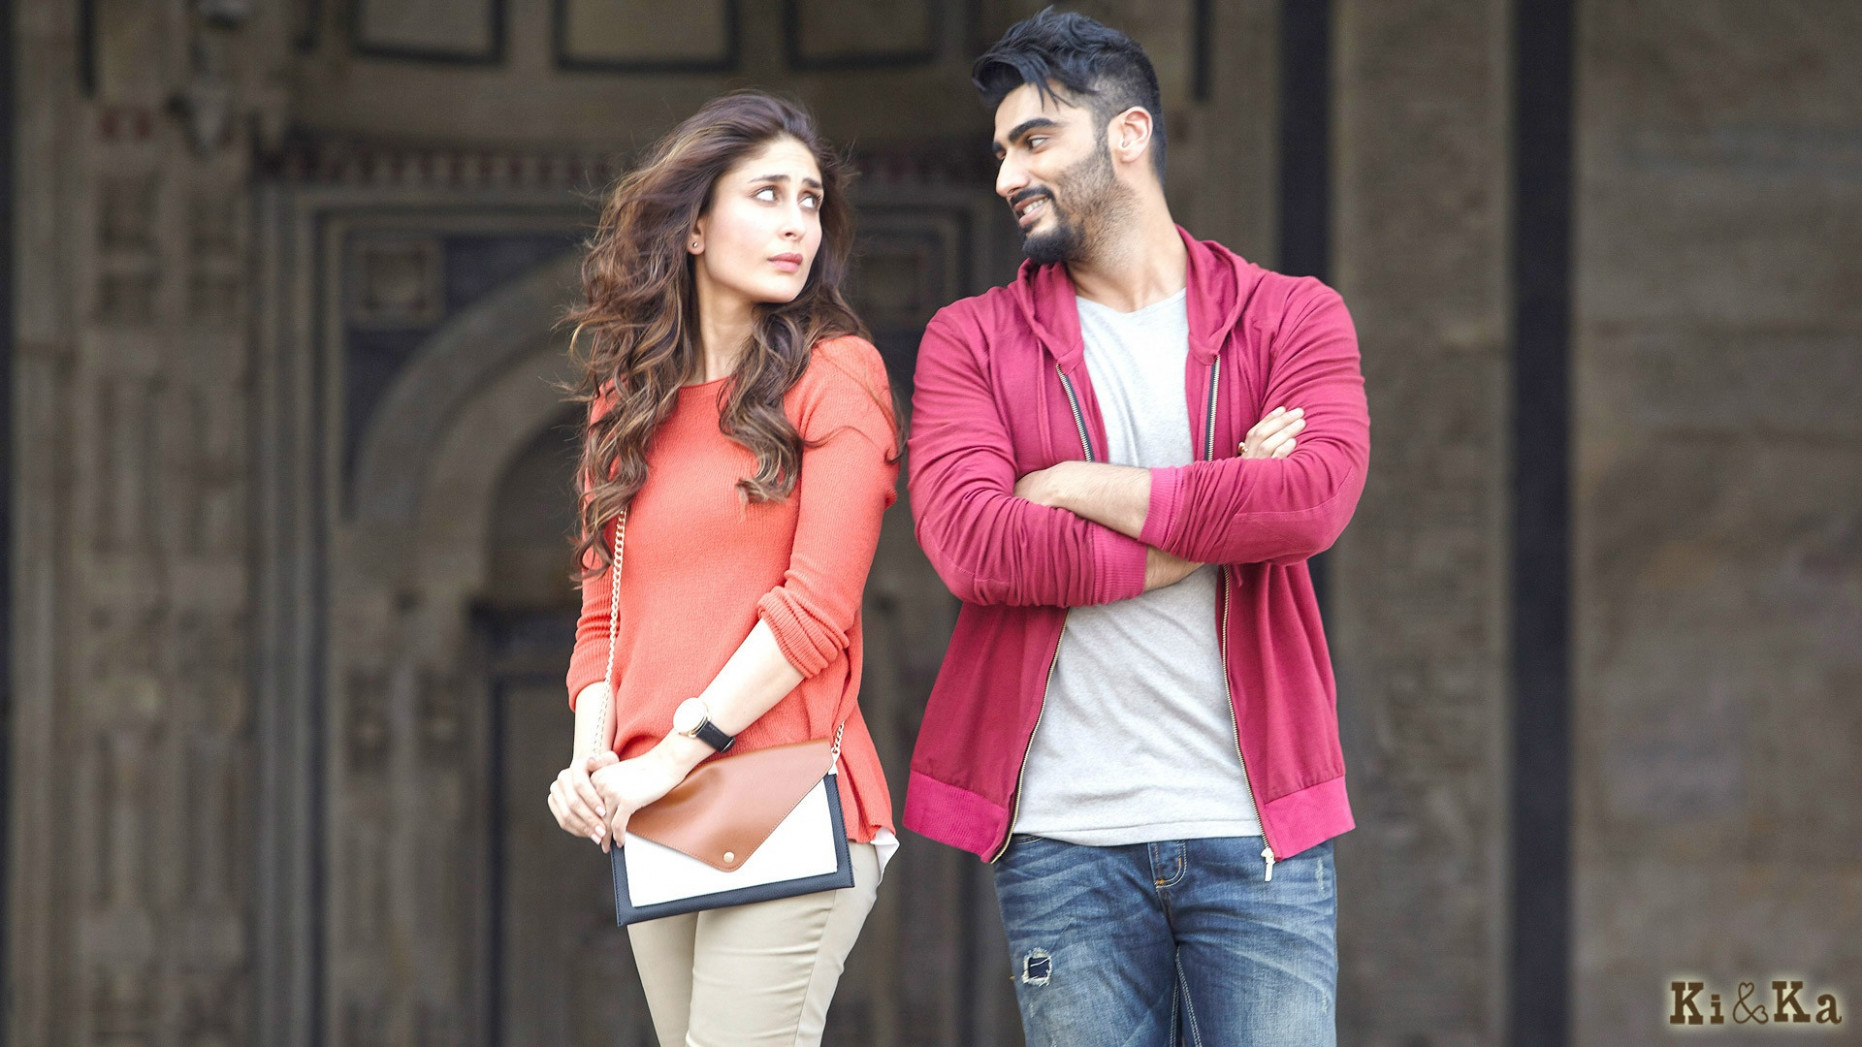 Kareena Kapoor Arjun Kapoor Ki & Ka wallpaper | movies and ...